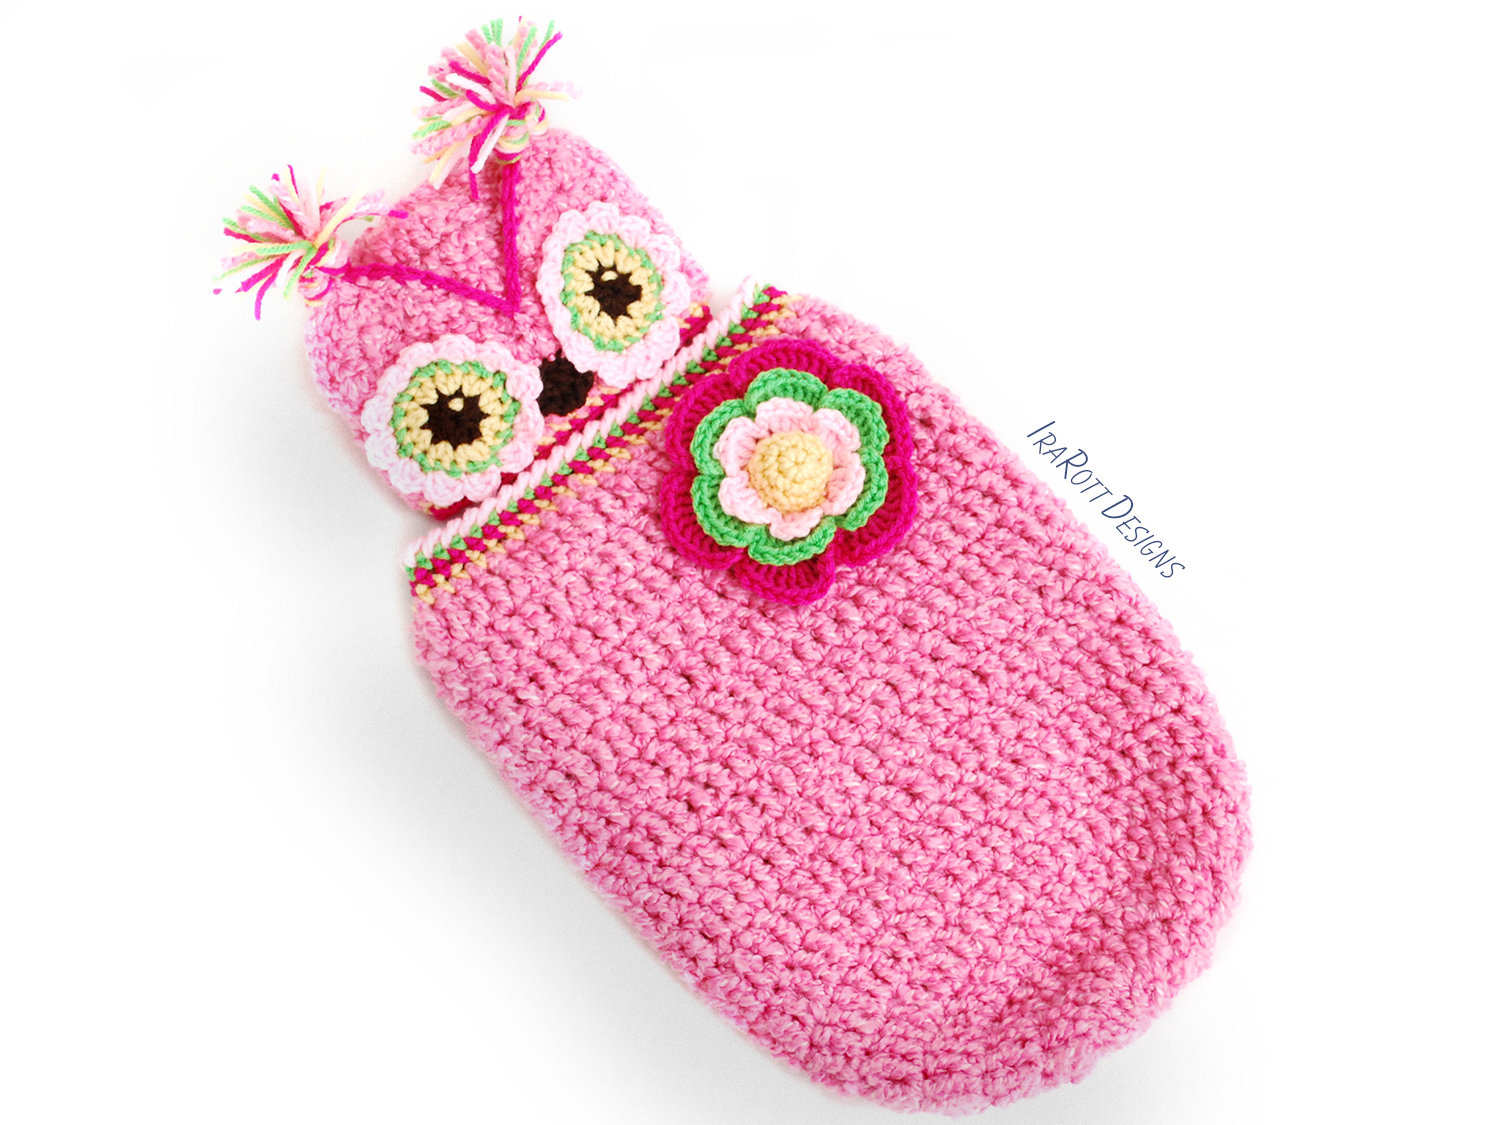 Owl Baby Animal Hat and Cocoon Crochet Pattern for Babies by IraRott ff0ecf6160b6